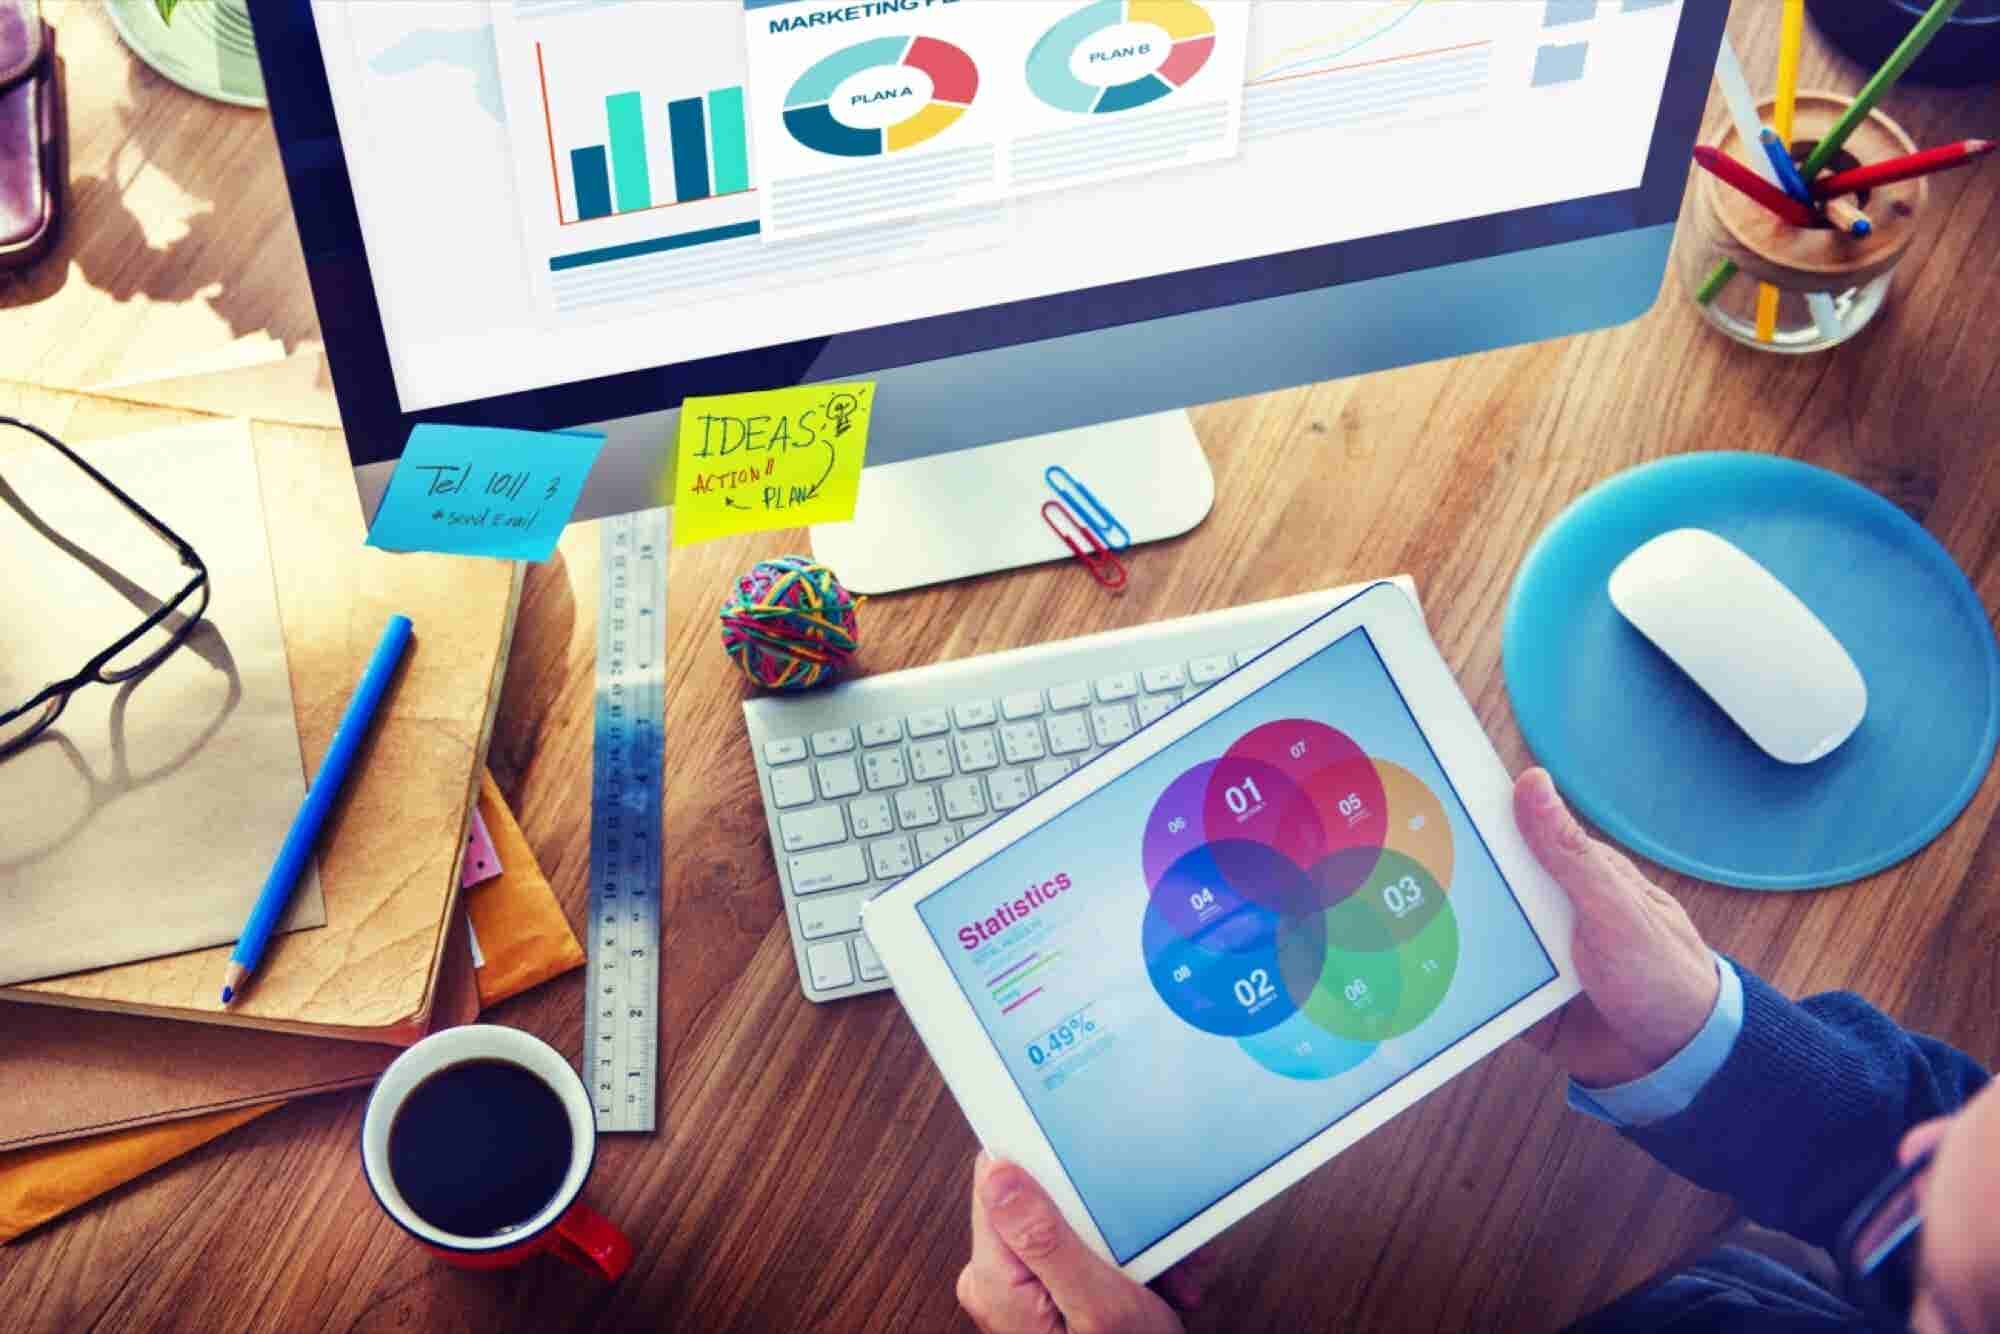 #5 Tips to Help Boost your Website's SEO Ranking